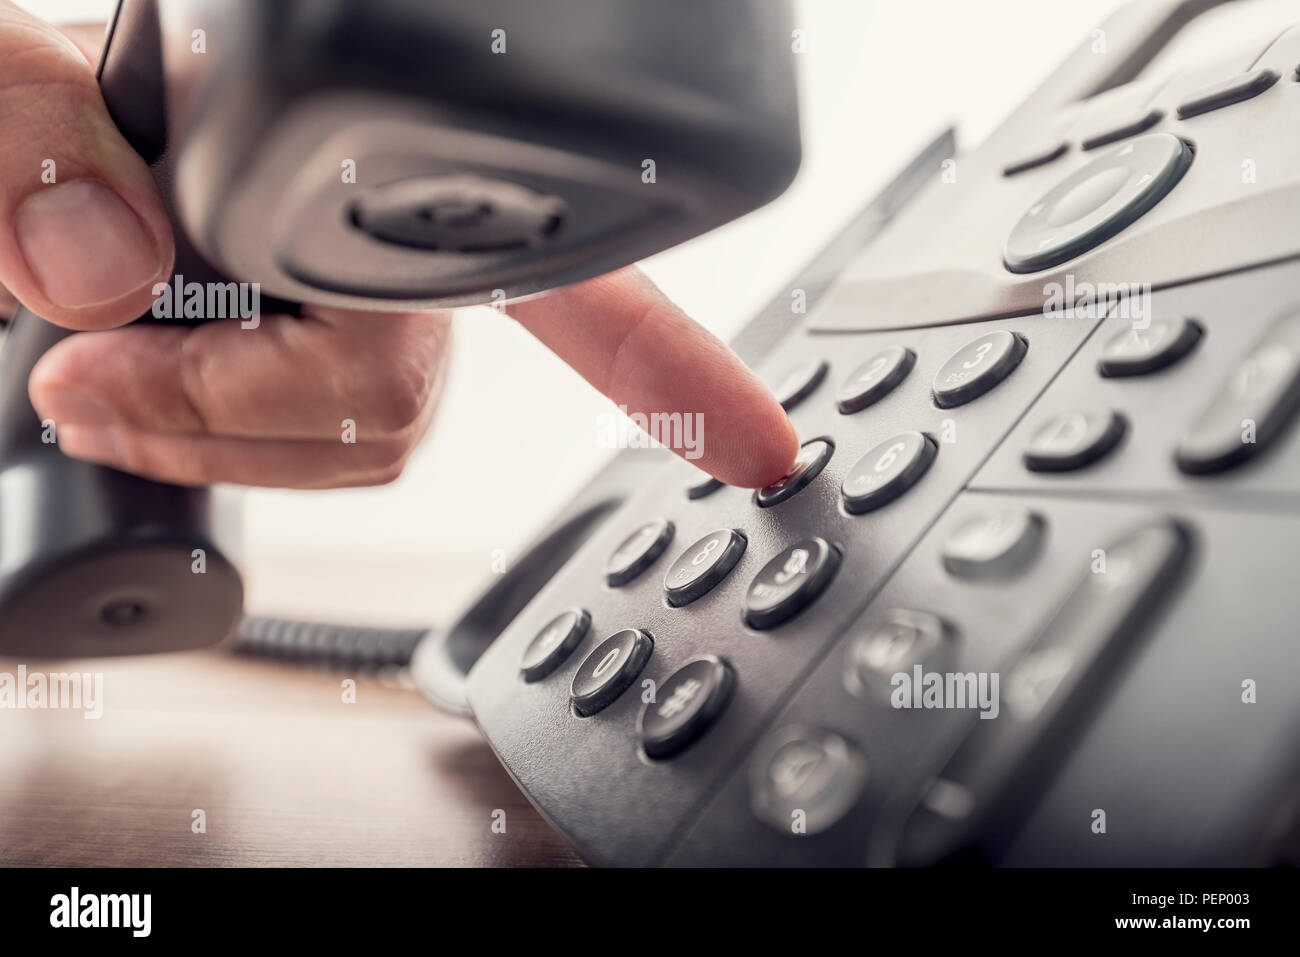 Closeup of male hand holding telephone receiver while dialing a telephone number to make a call using a black landline phone. With retro filter effect - Stock Image